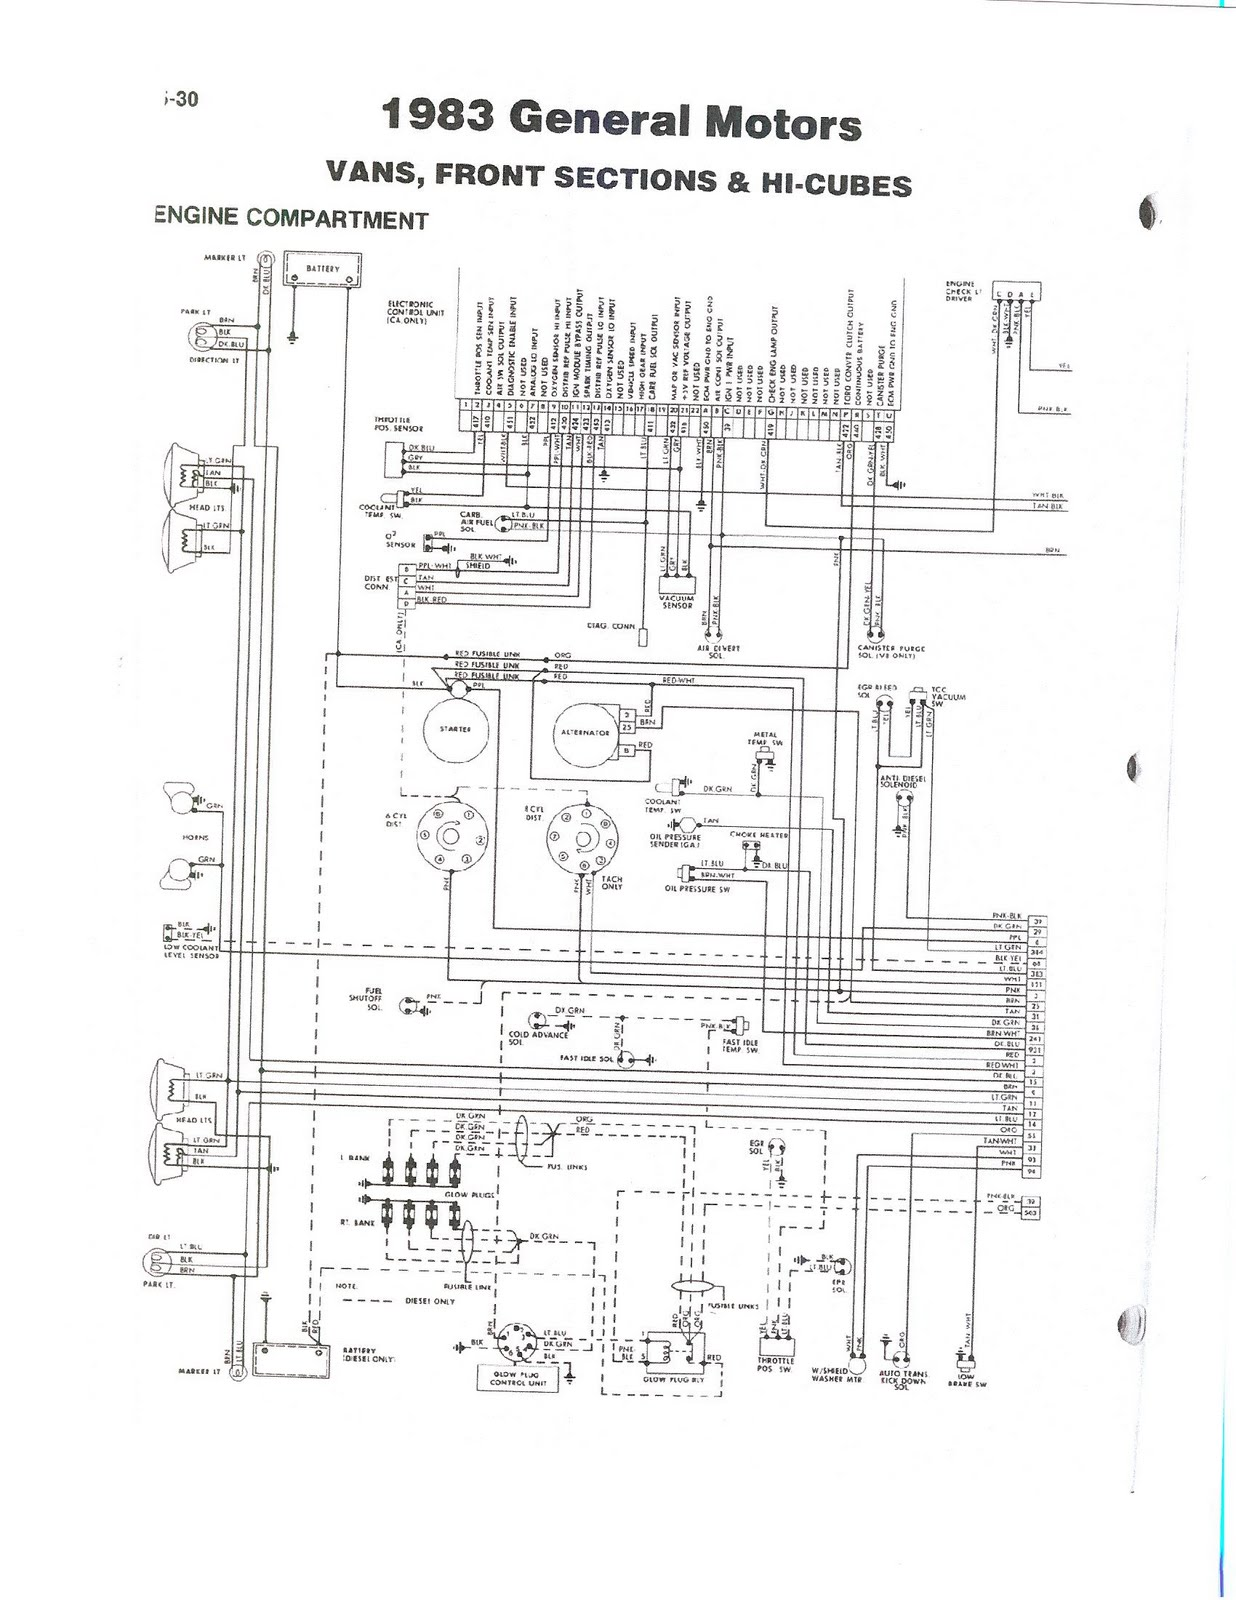 Fleetwood Motorhome Wiring Diagrams Ignition, Fleetwood